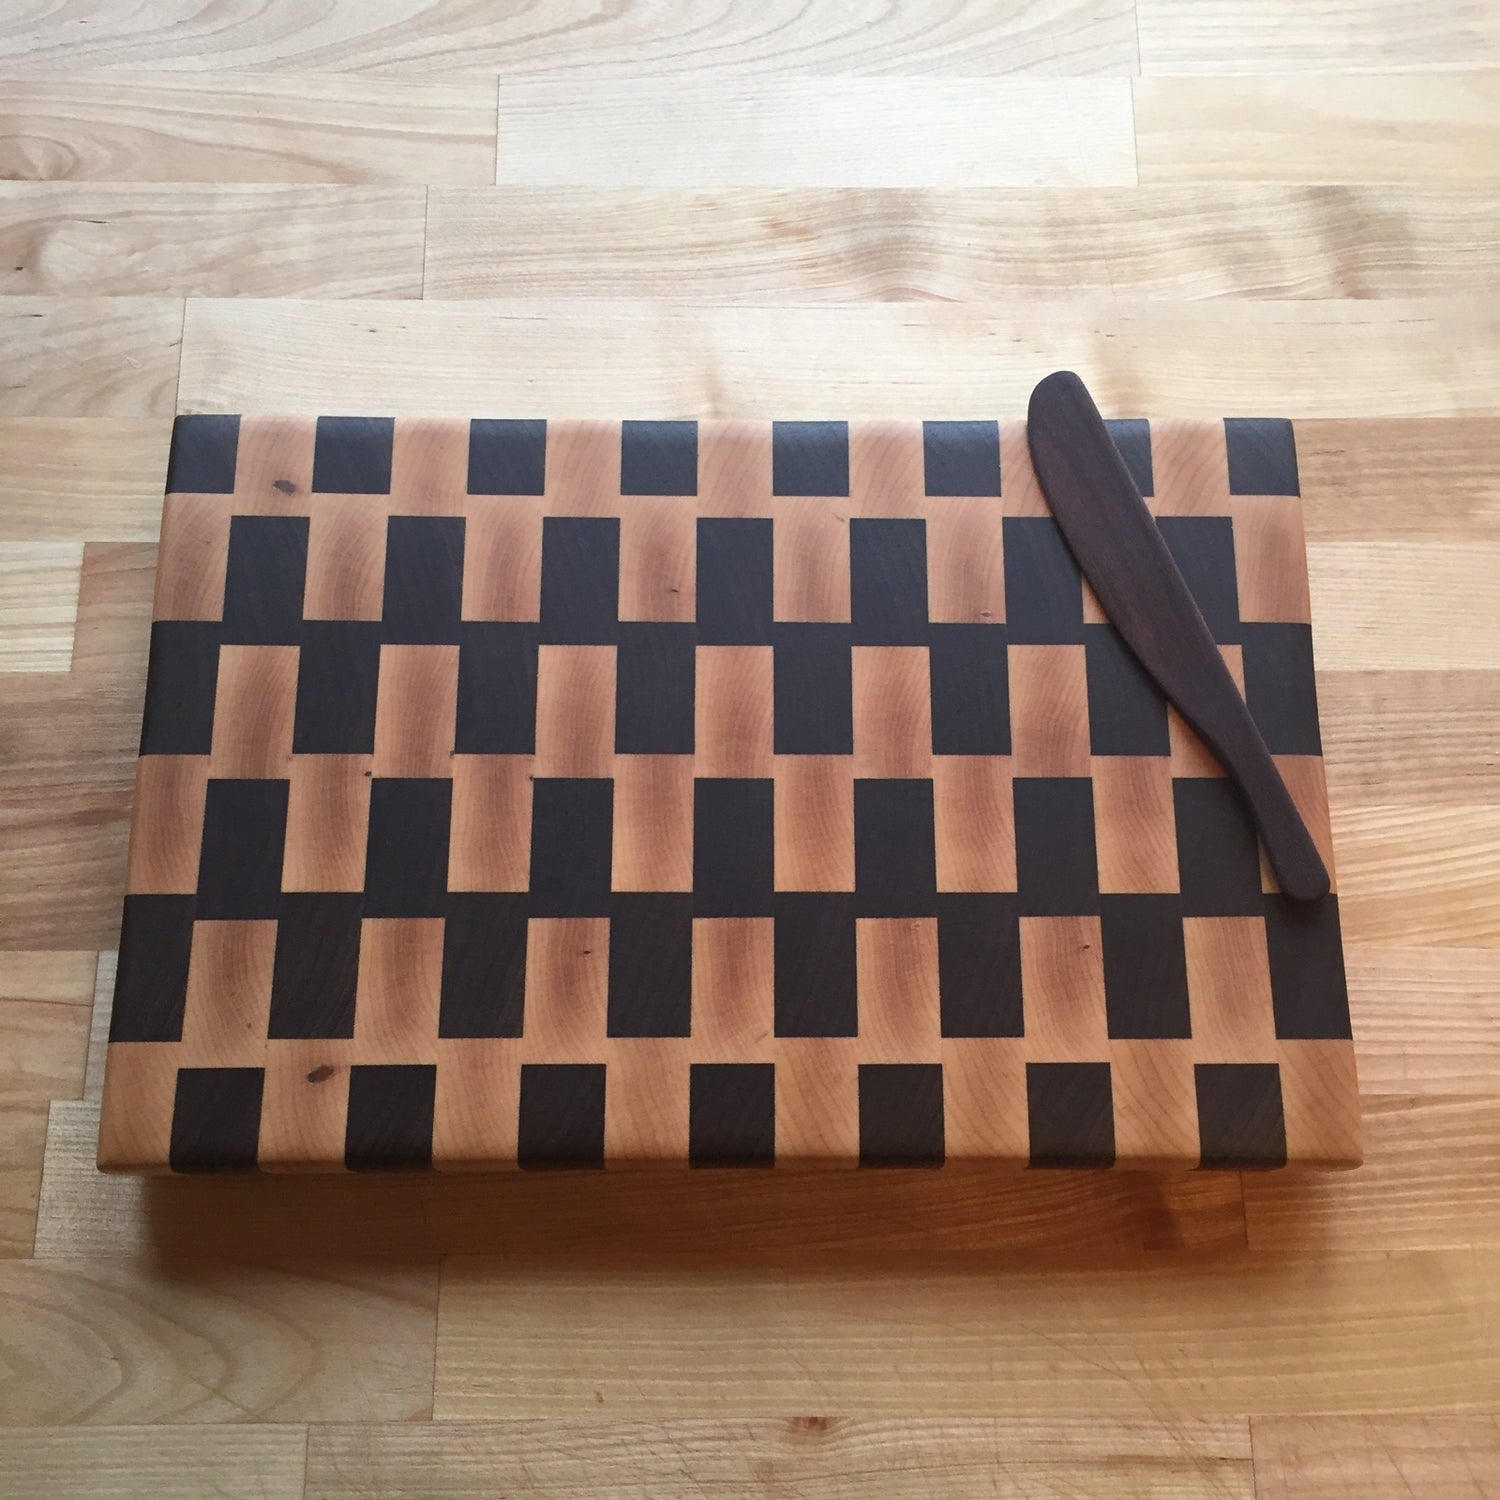 Image of Large walnut and maple end grain cutting board